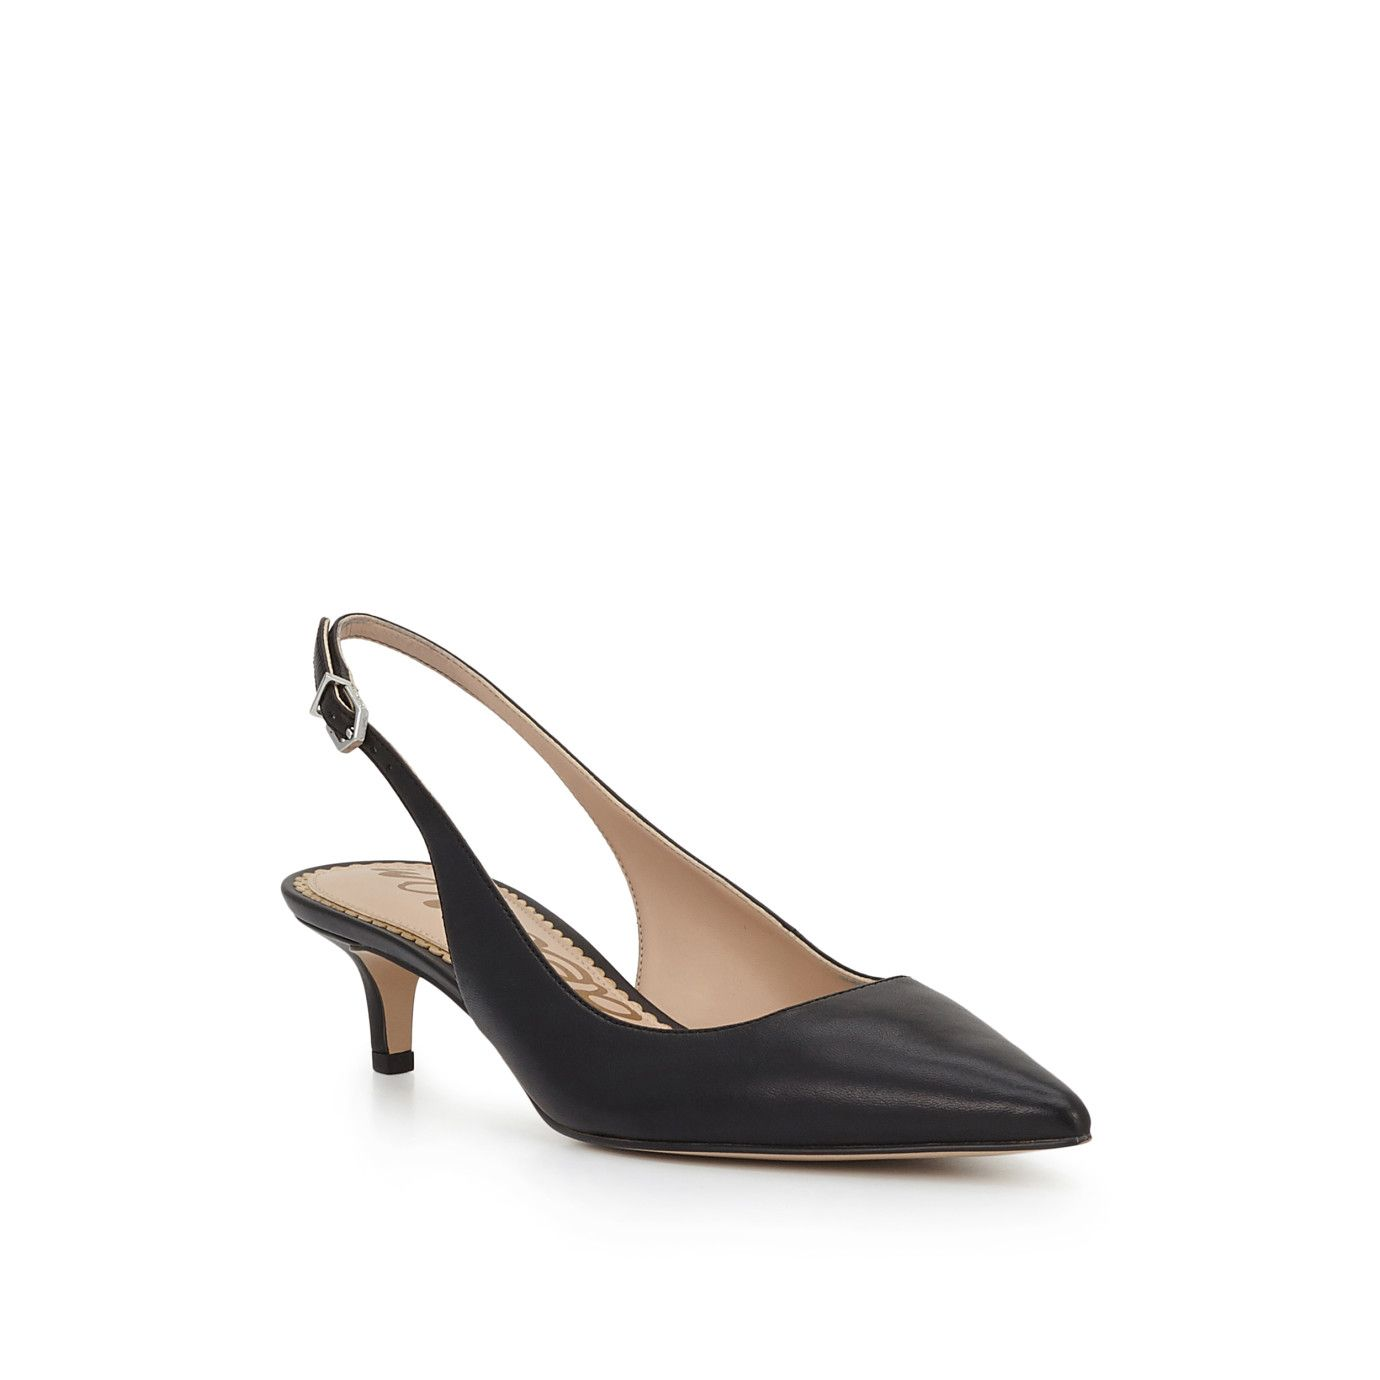 Ludlow Slingback Kitten Heel By Sam Edelman Black Leather View 3 Heels Womens Shoes High Heels Shoes